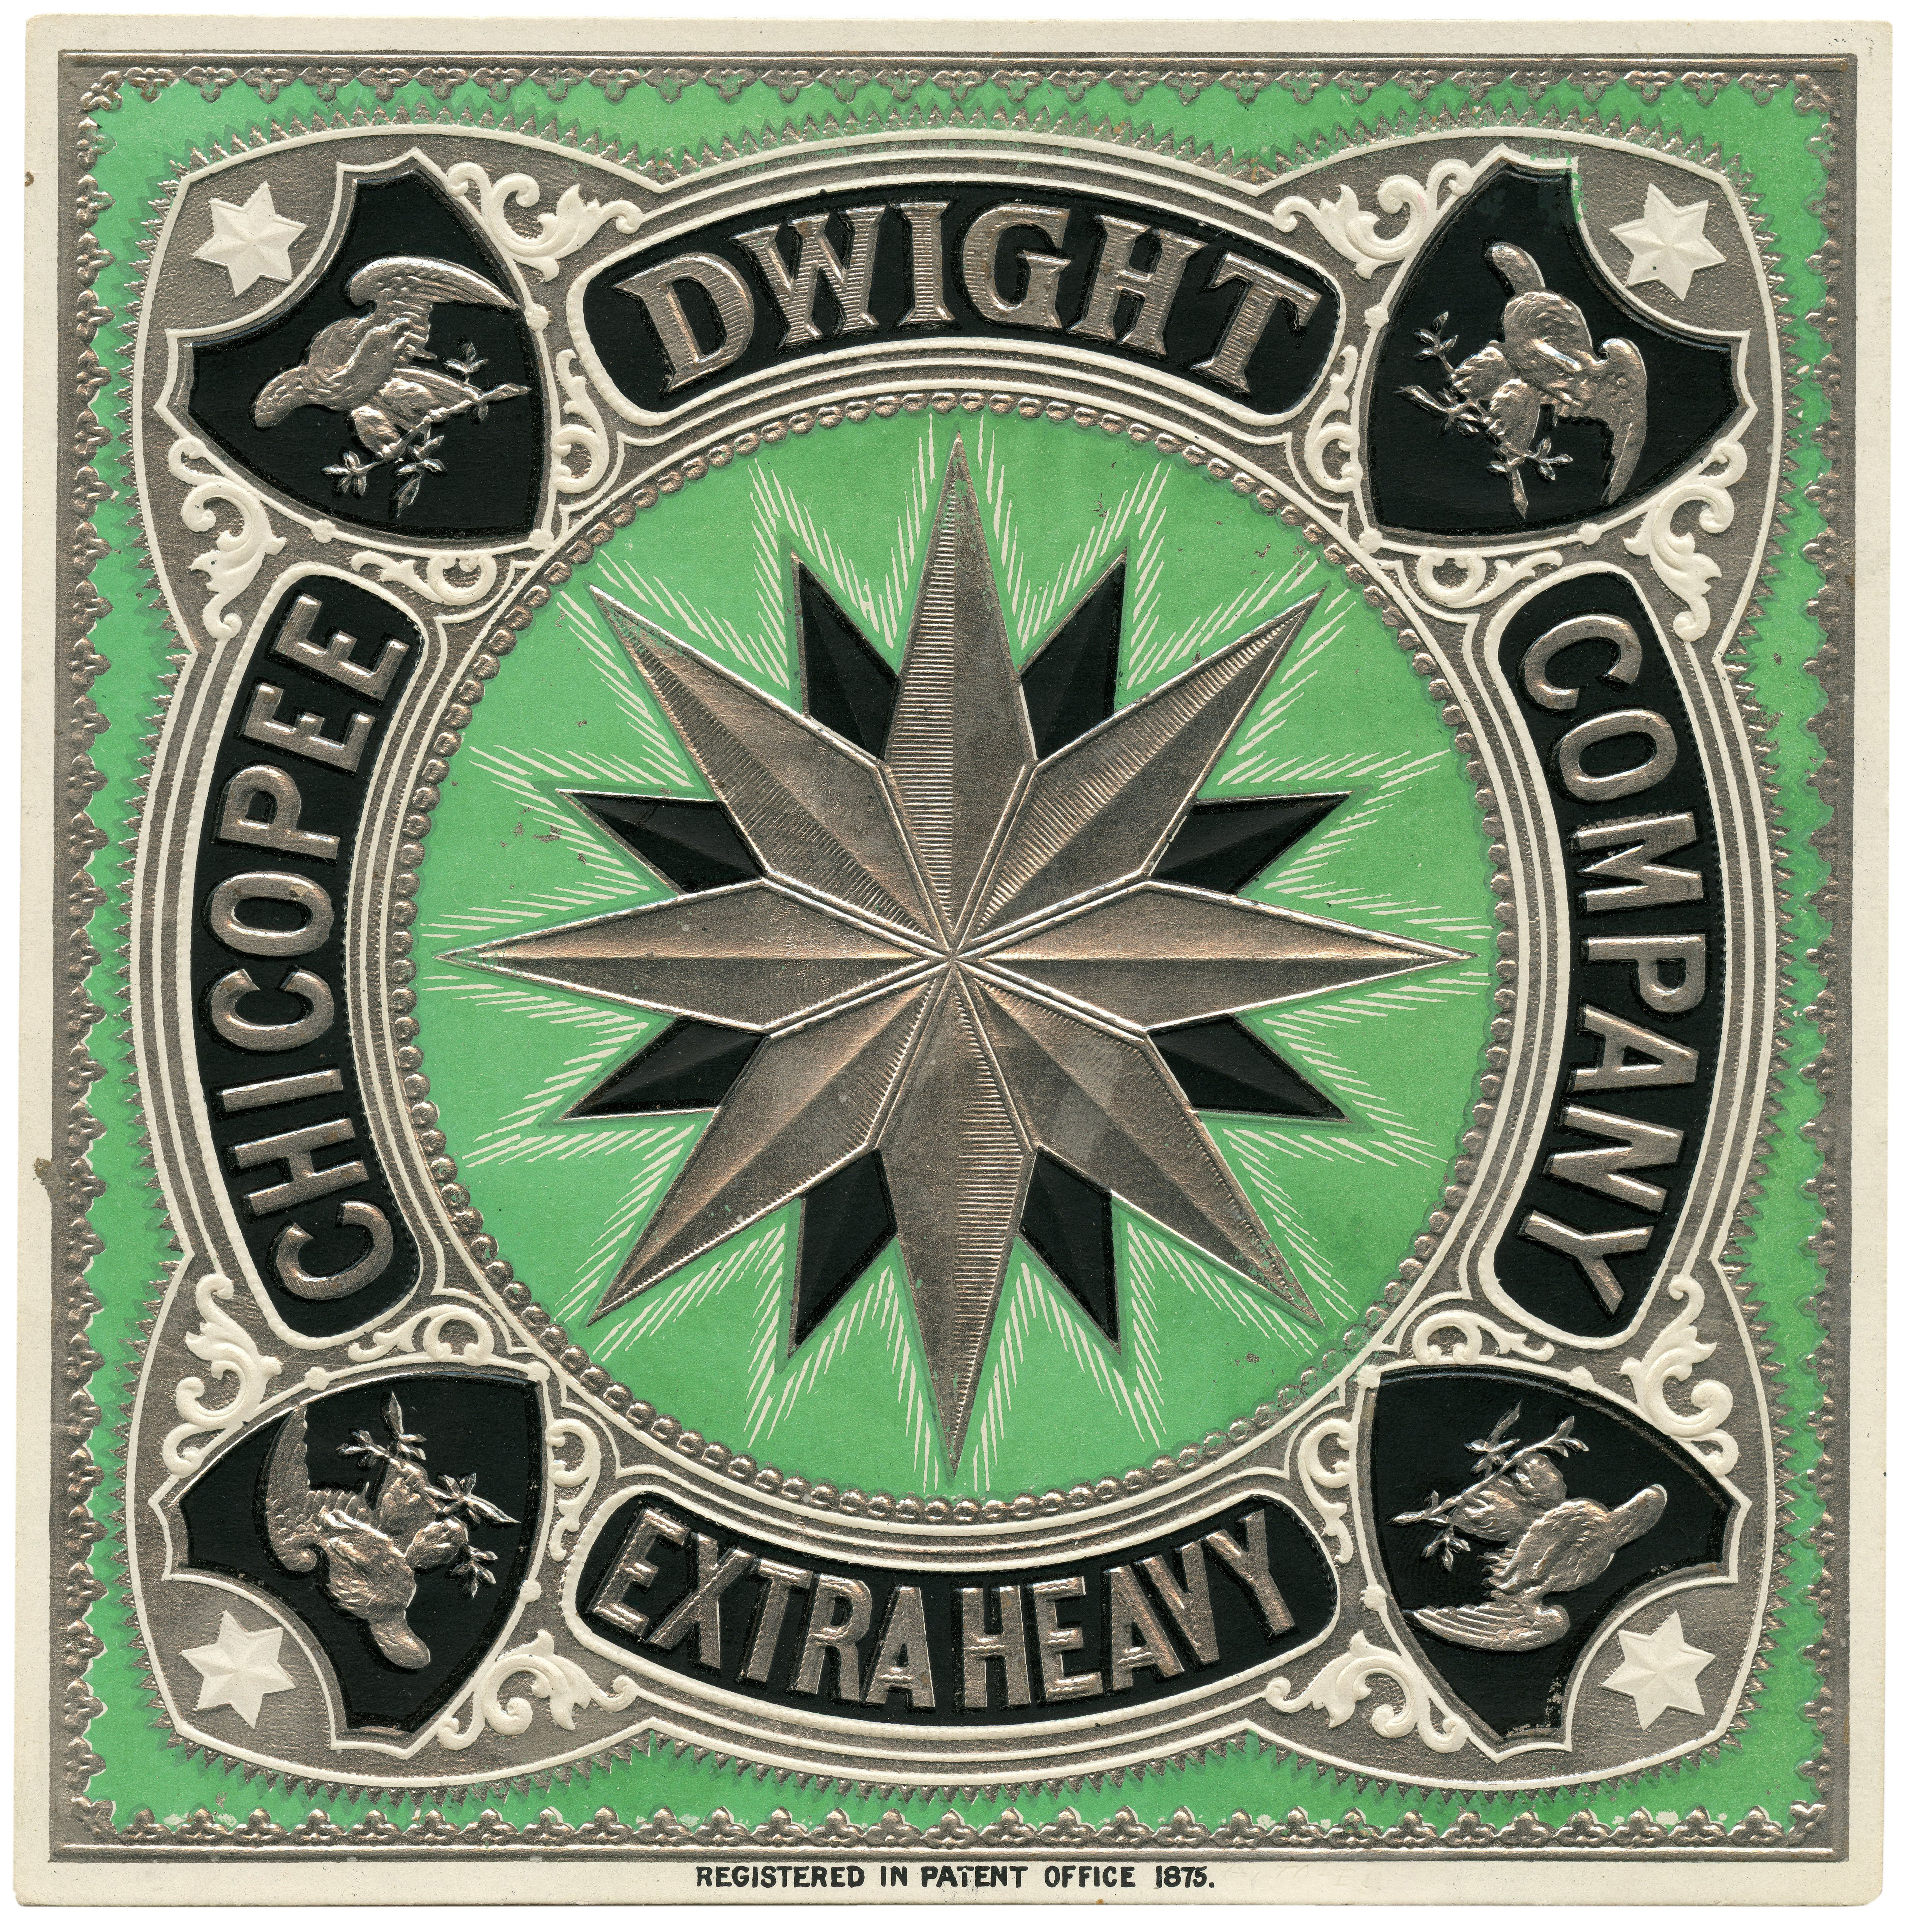 An Antique Green Ground Chicopee Dwight Company Extra Heavy Embossed Paper Trade Label 1875